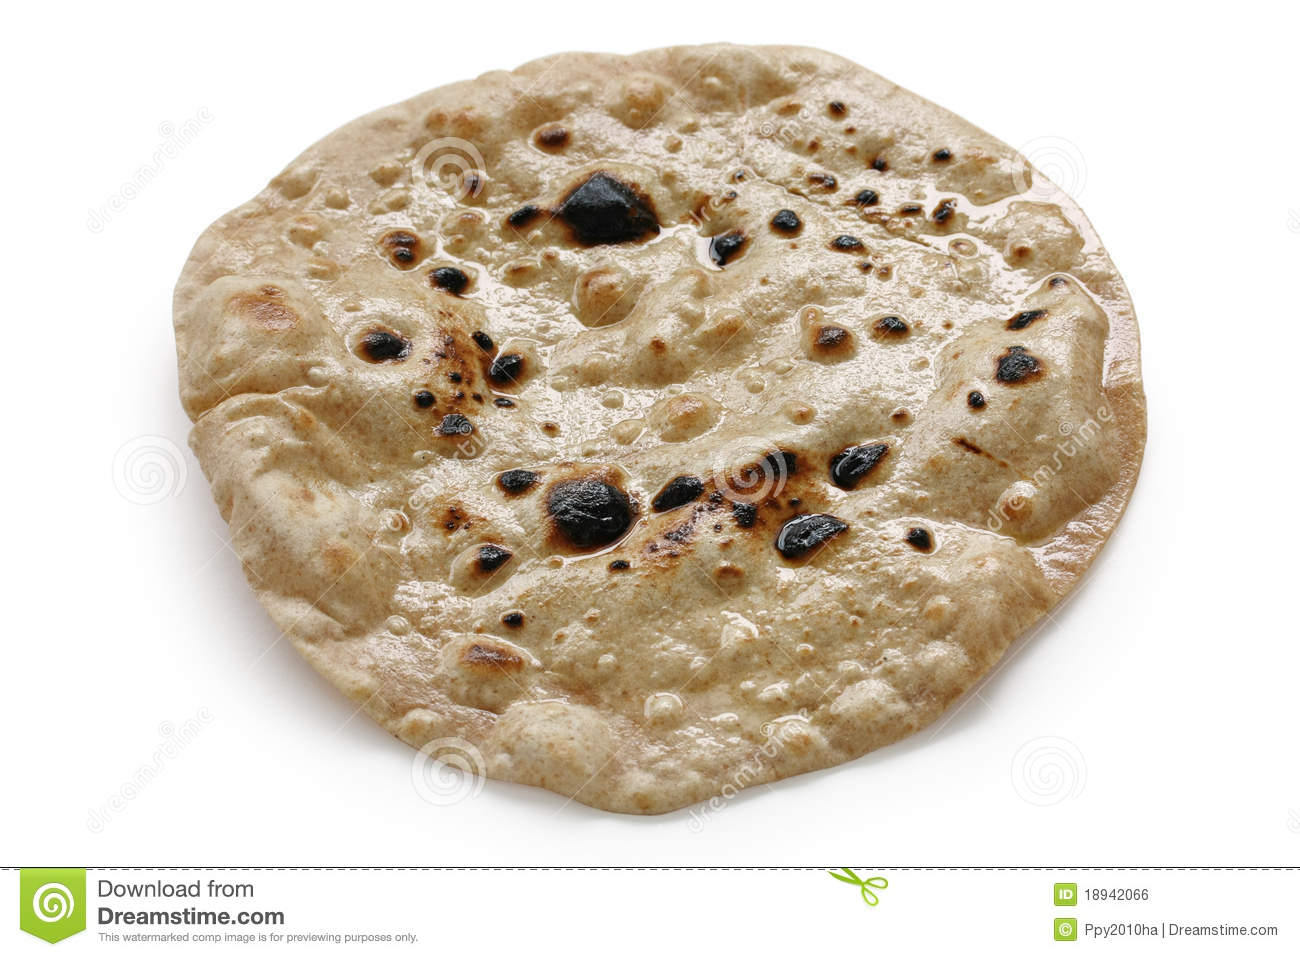 Chapati , Flat Indian Bread Royalty Free Stock Image - Image: 18942066